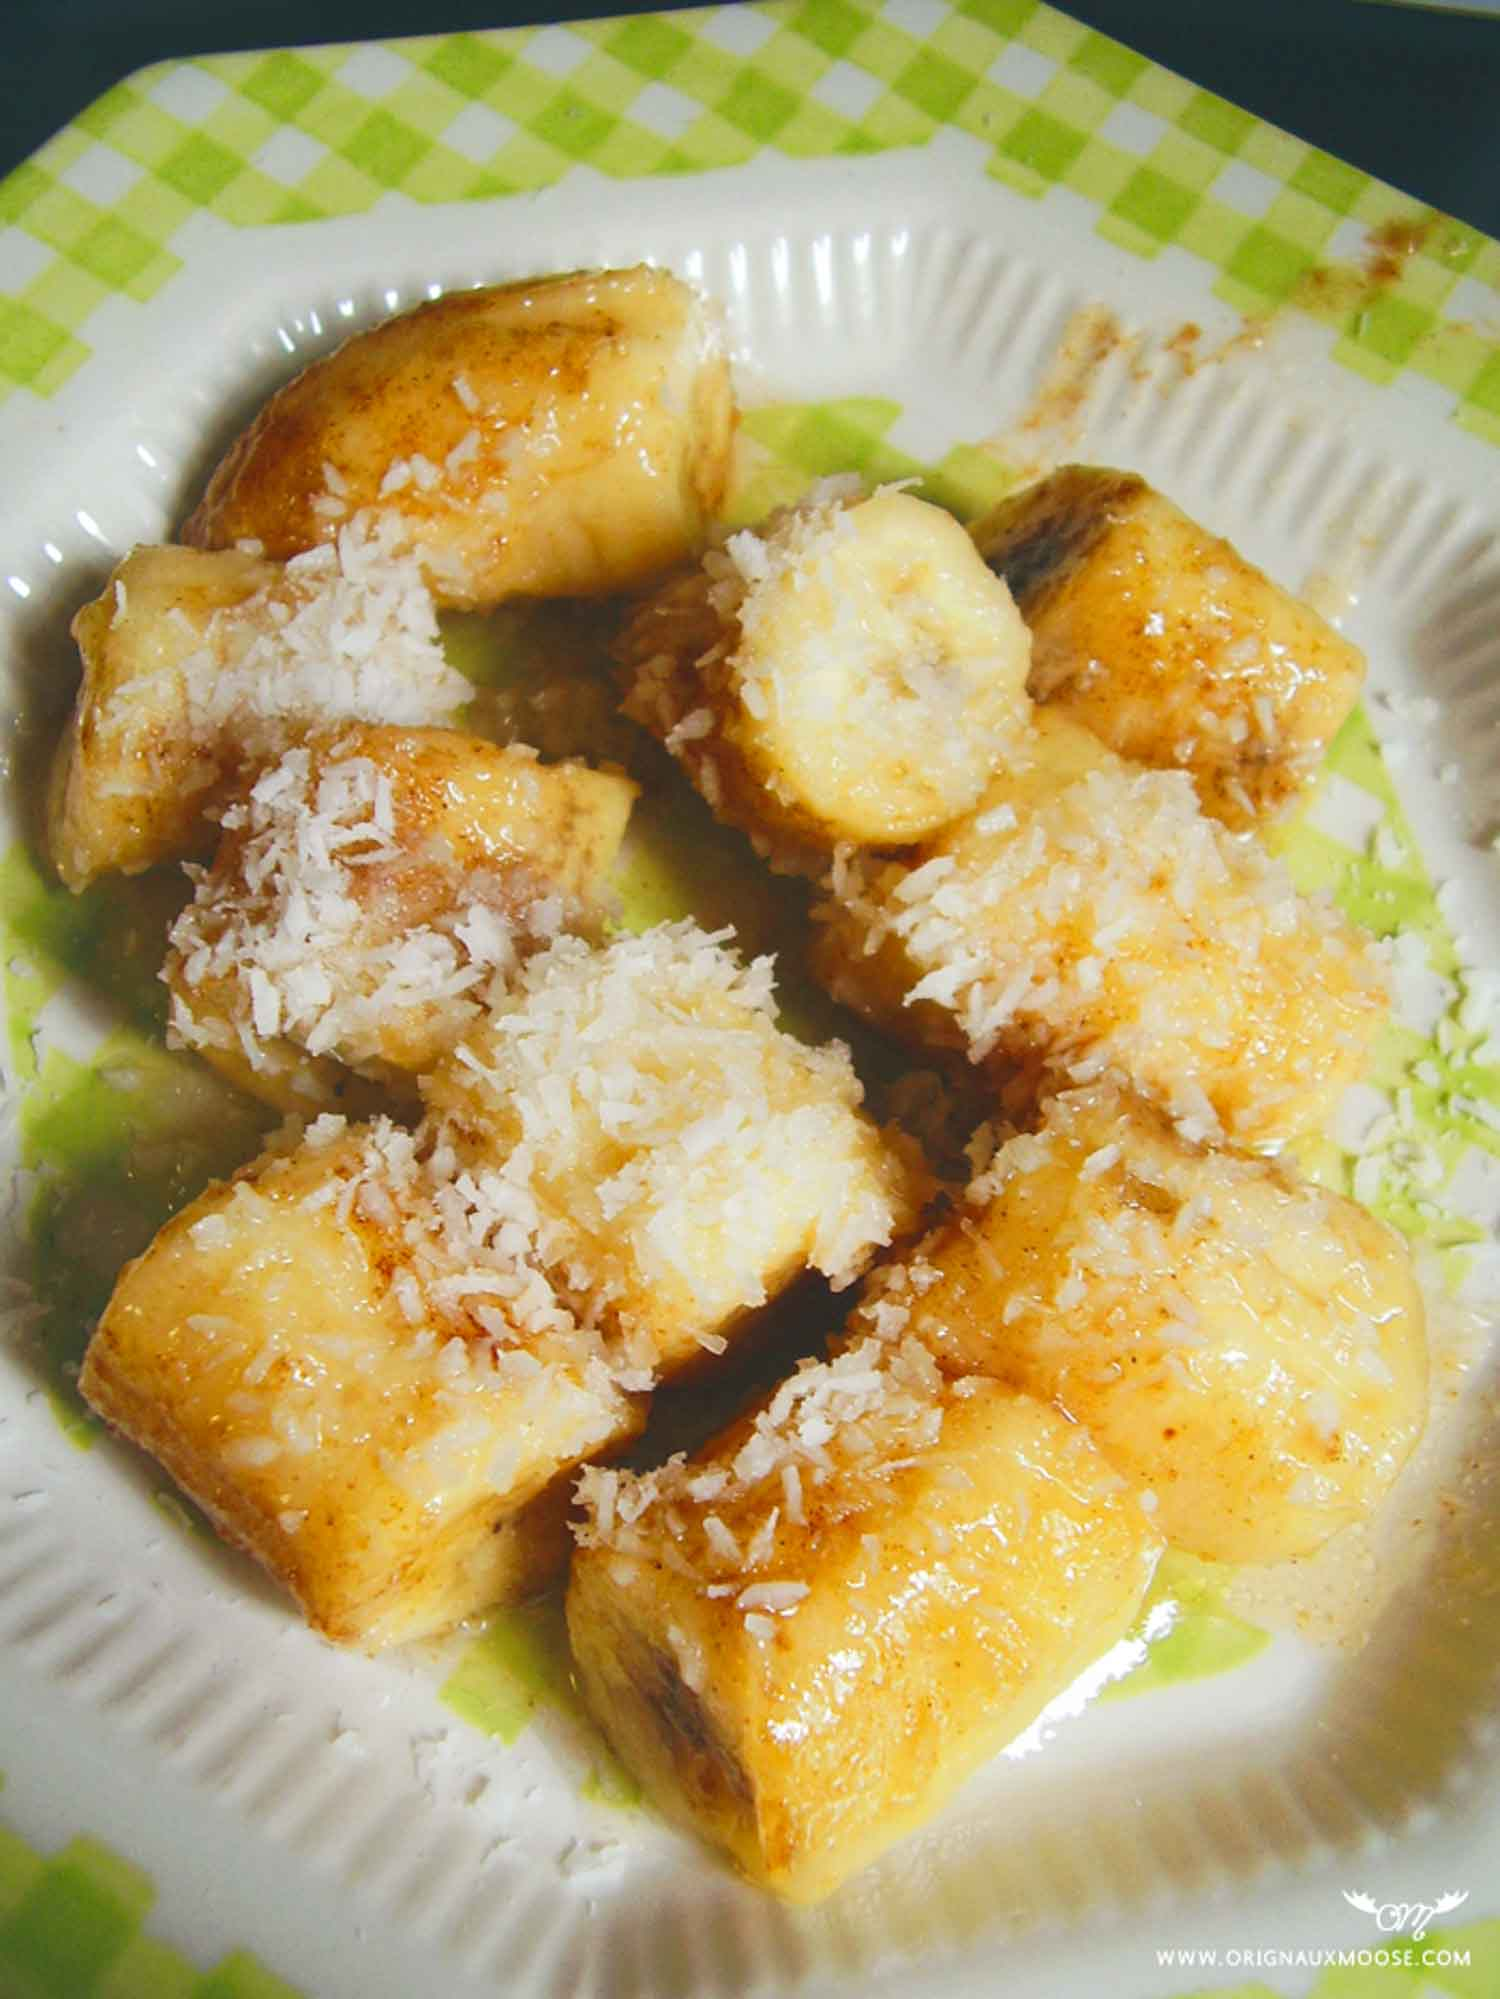 Baked bananas with coconut topping on a green and white plate.